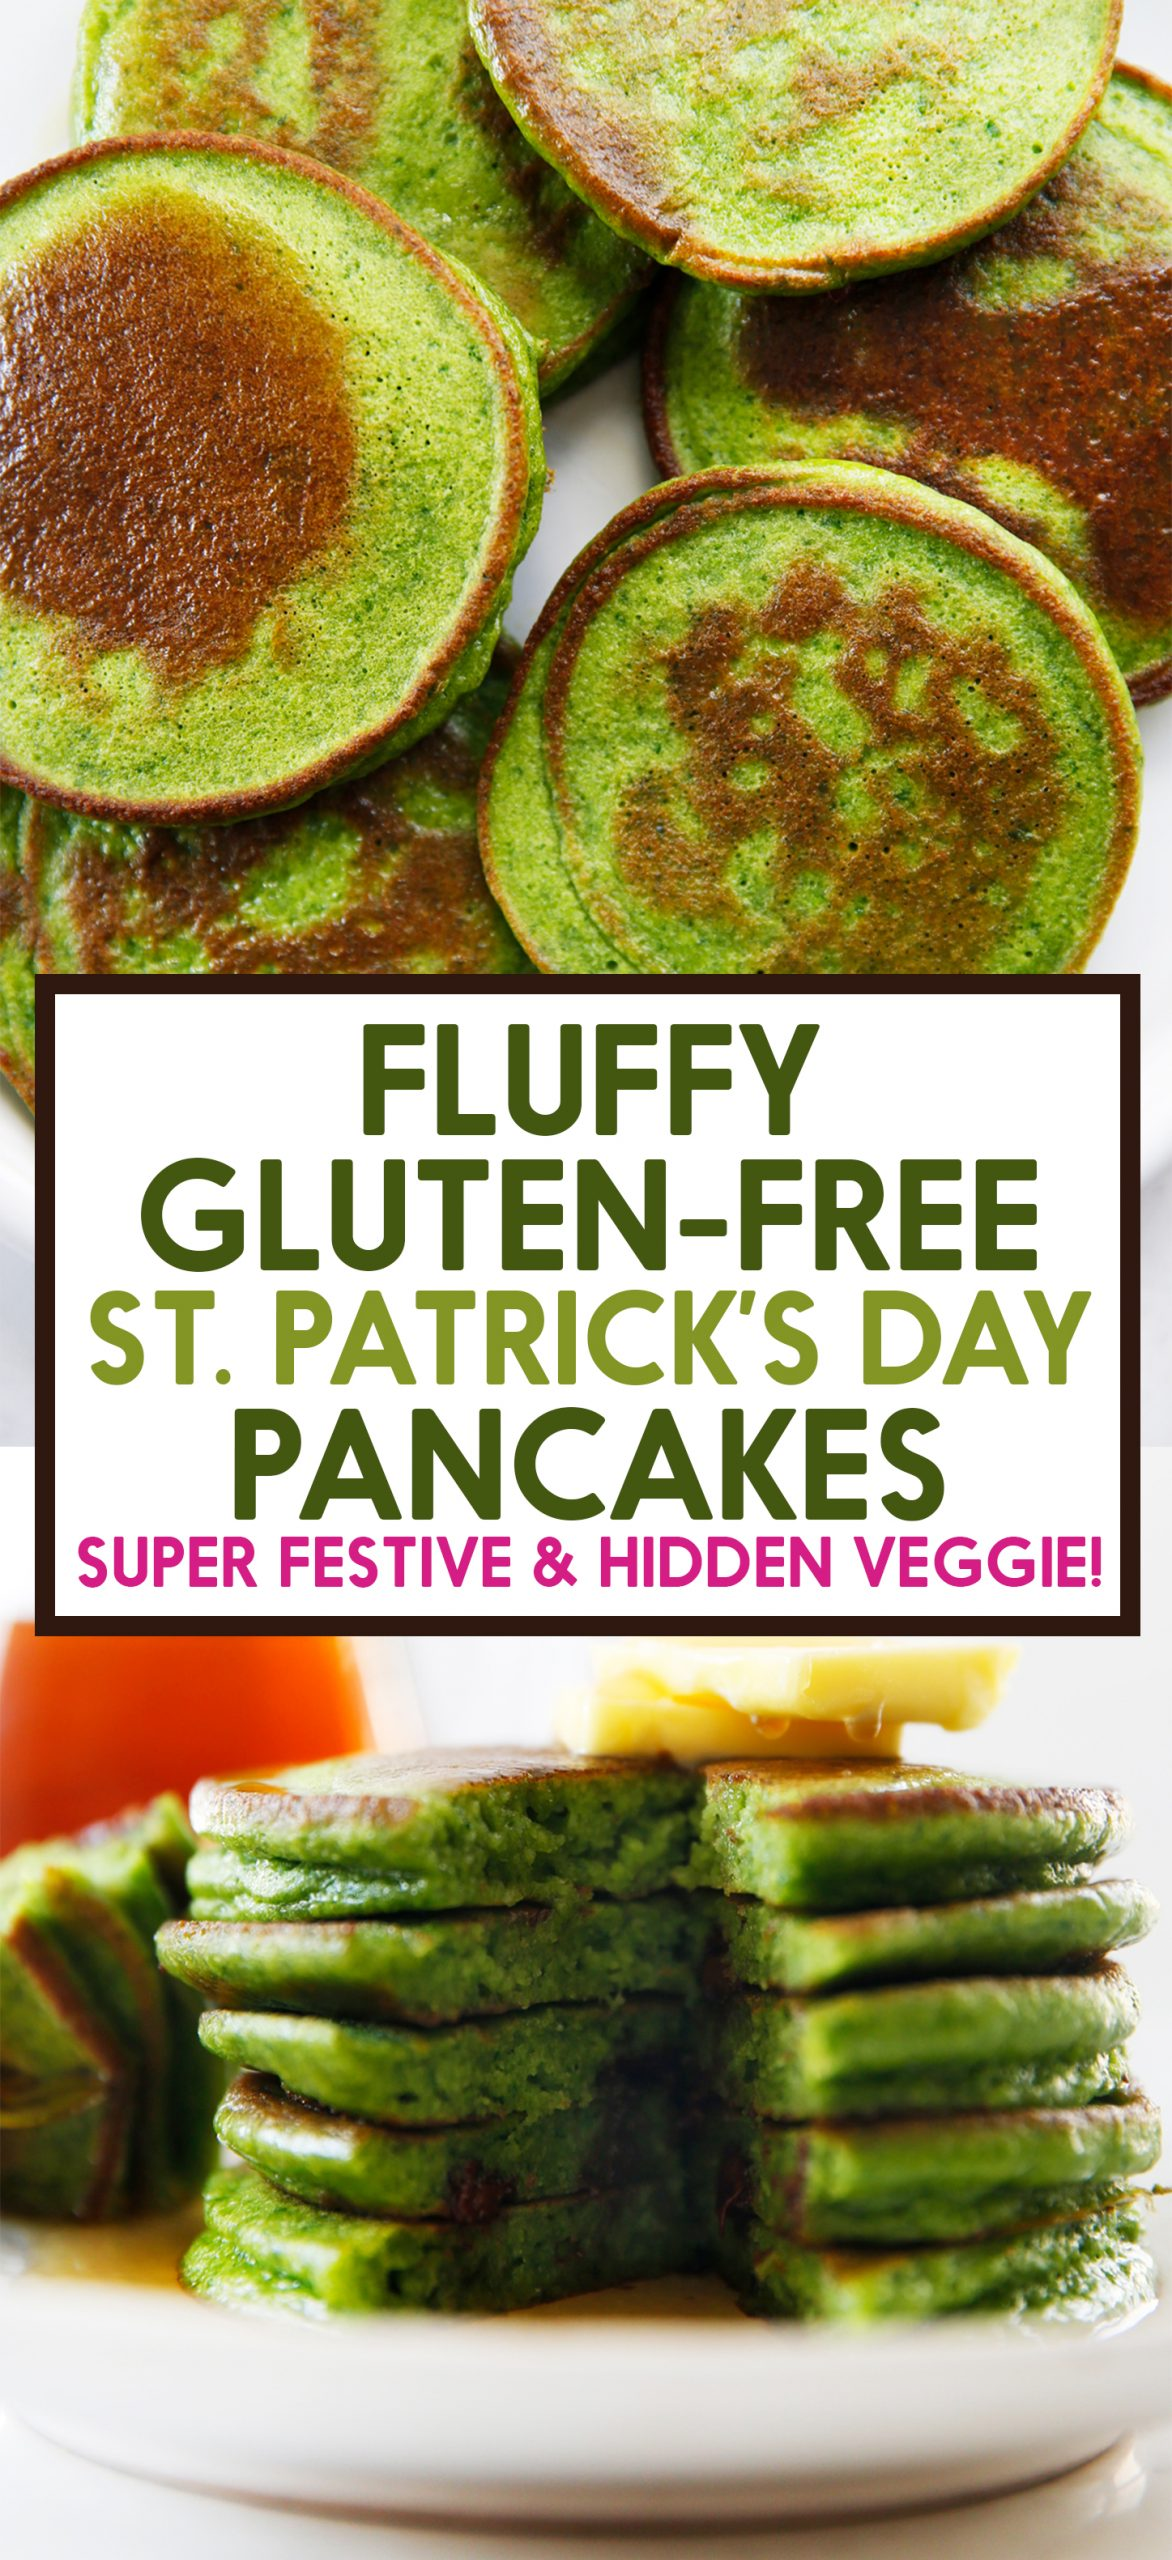 Healthy Spinach Pancakes (Kid-Approved) – Lexi's Clean Kitchen